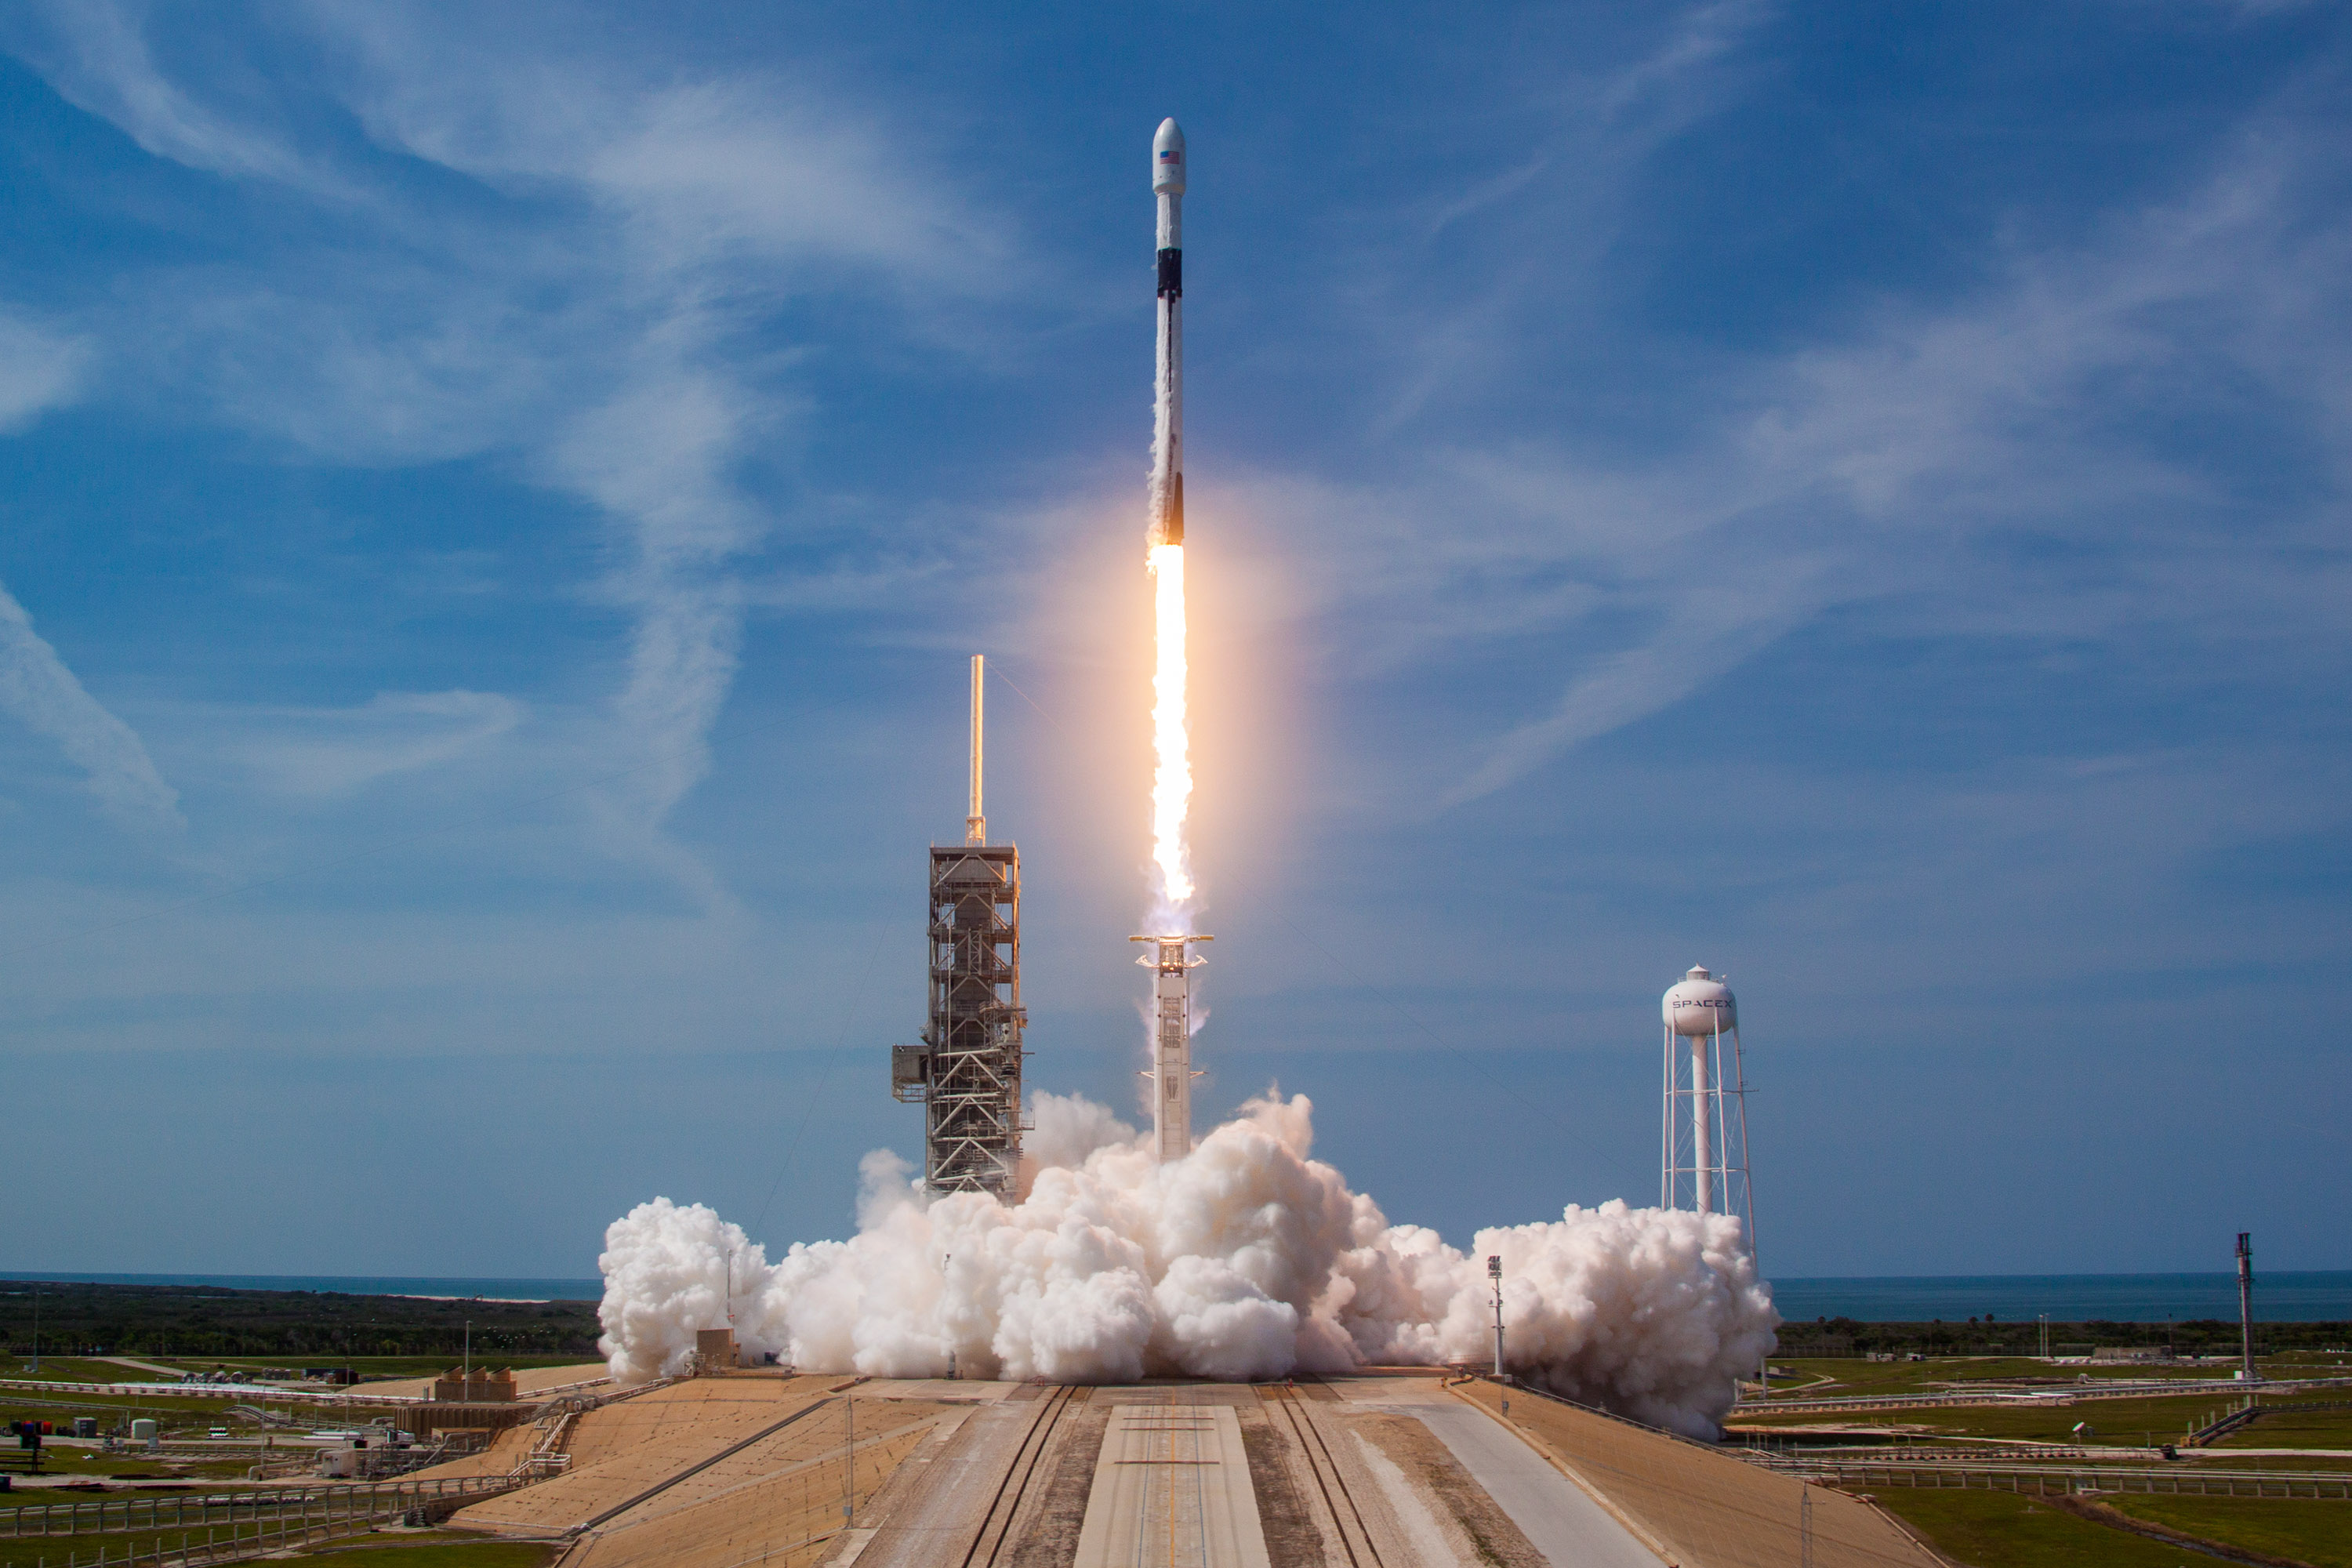 spacex launches rocket - HD3000×2000